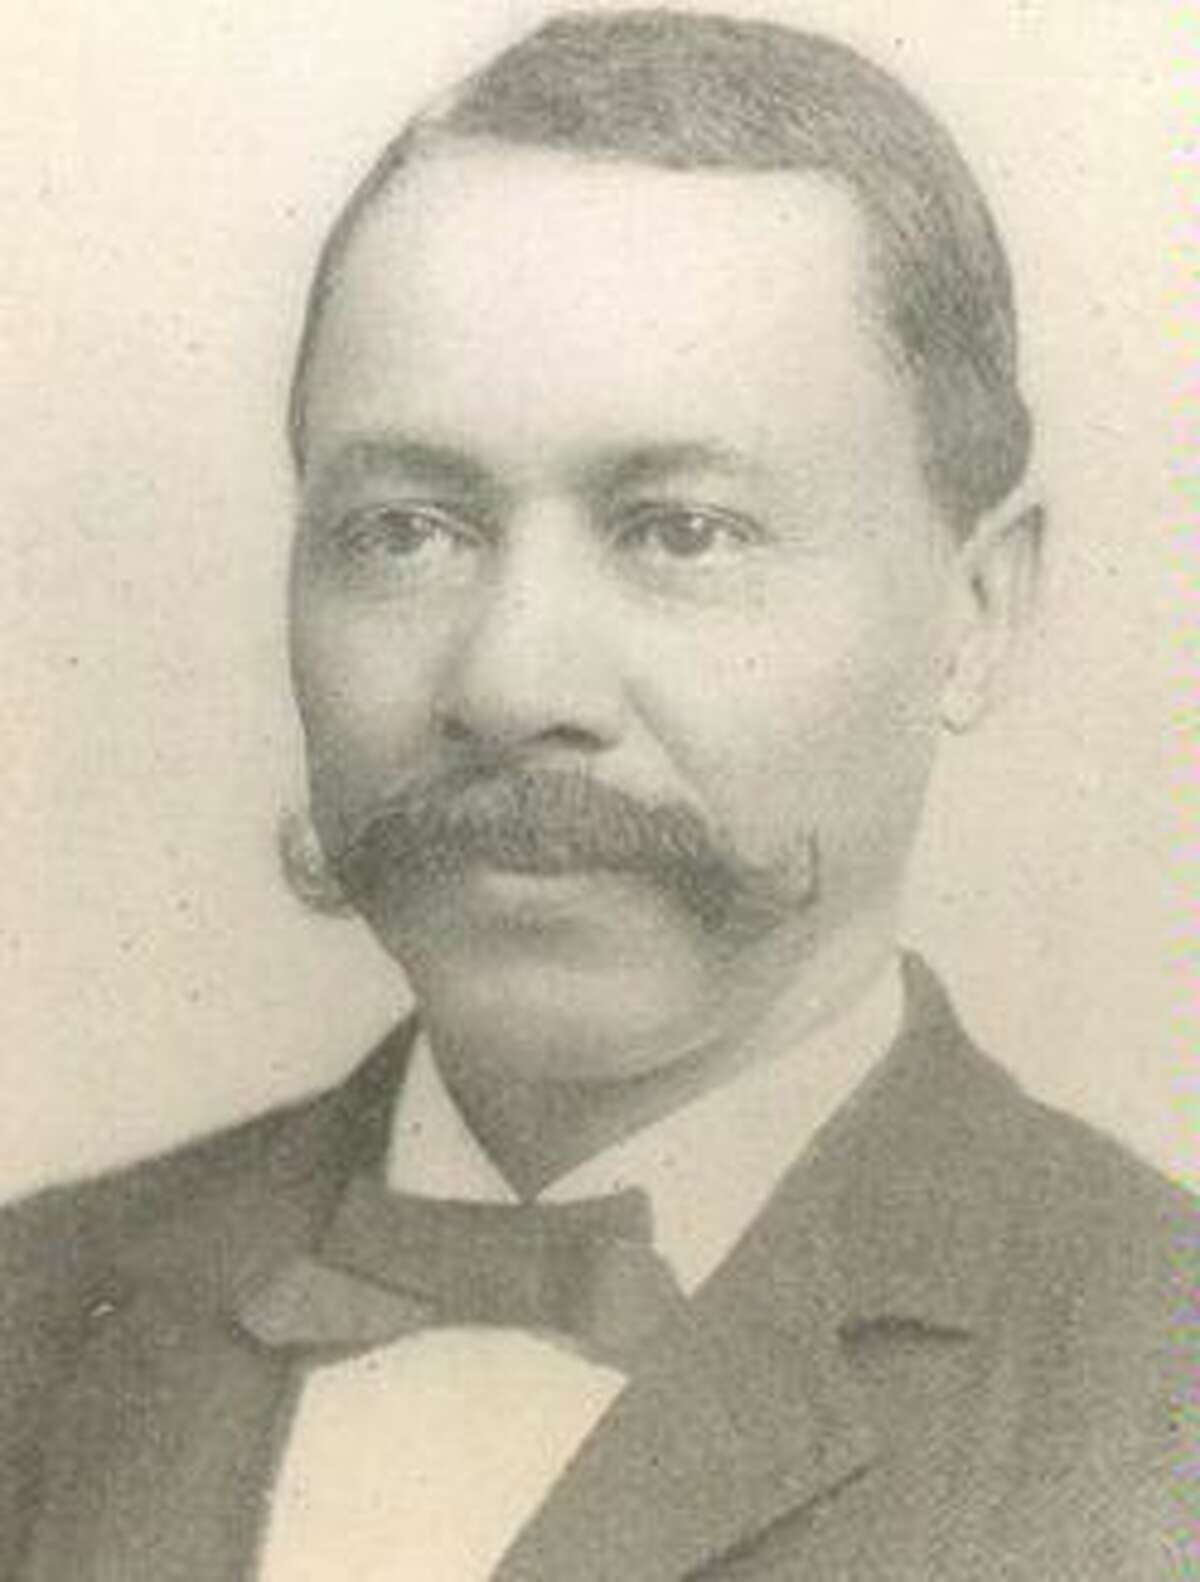 Born in 1833, abolitionist Ebenezer Bassett was the son of Black Governor Eben Tobias. He was the first black man to graduate from Connecticut Normal School - now known as Central Connecticut State University. The civil war had just ended when President Ulysses Grant asked him to be the first U.S. minister to the new republic of Haiti, marking the beginning of a long diplomatic career. Source:diplomacy.state.gov